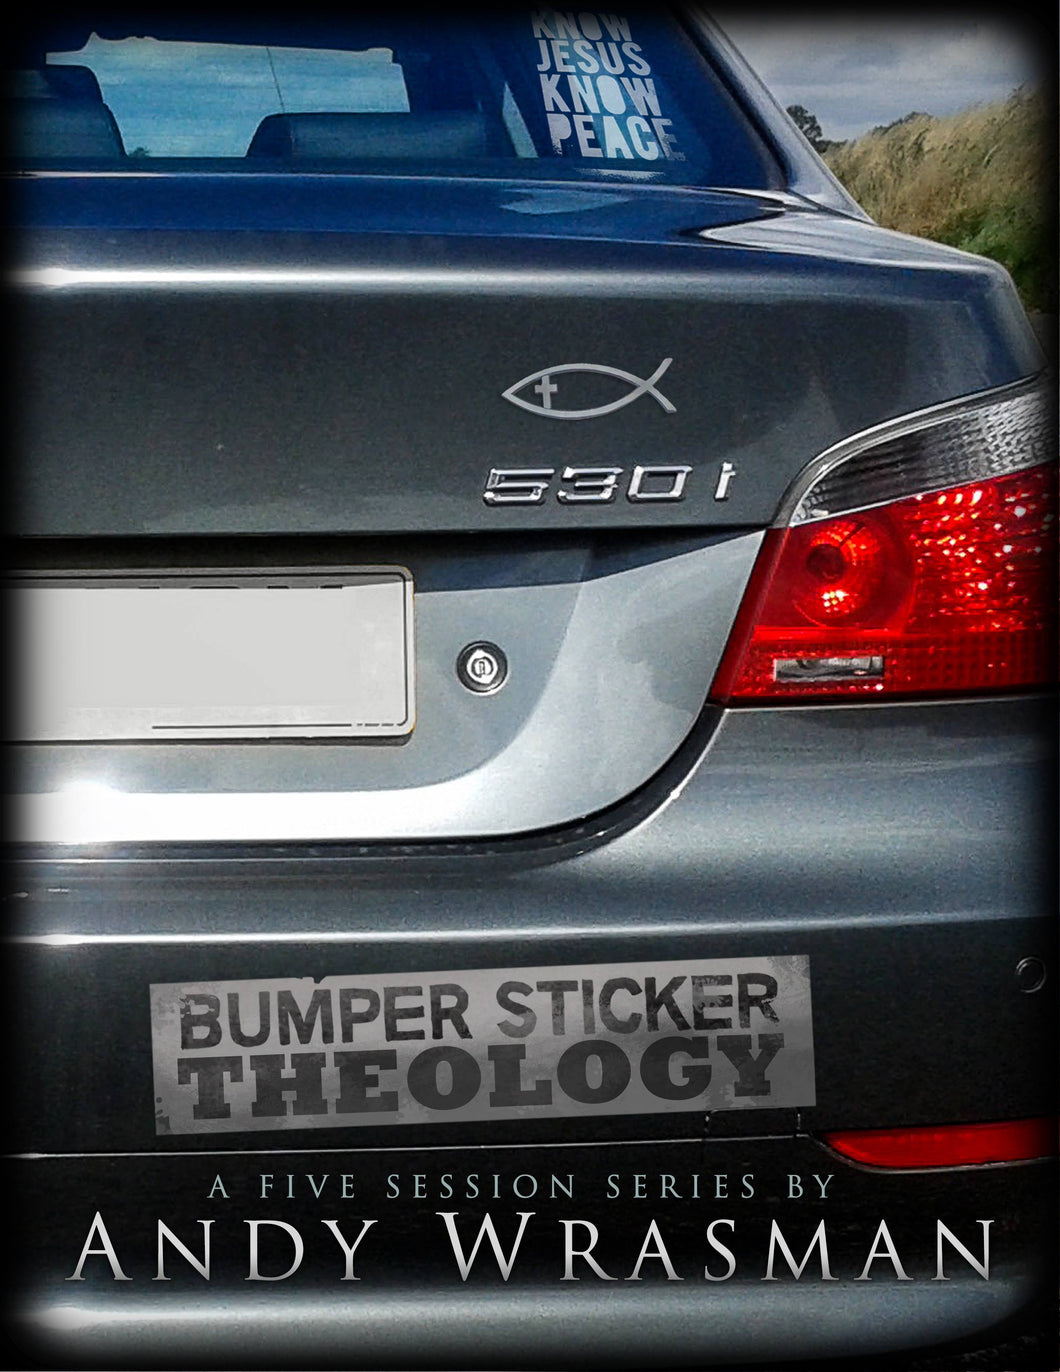 Bumper Sticker Theology (A Five Session Series)